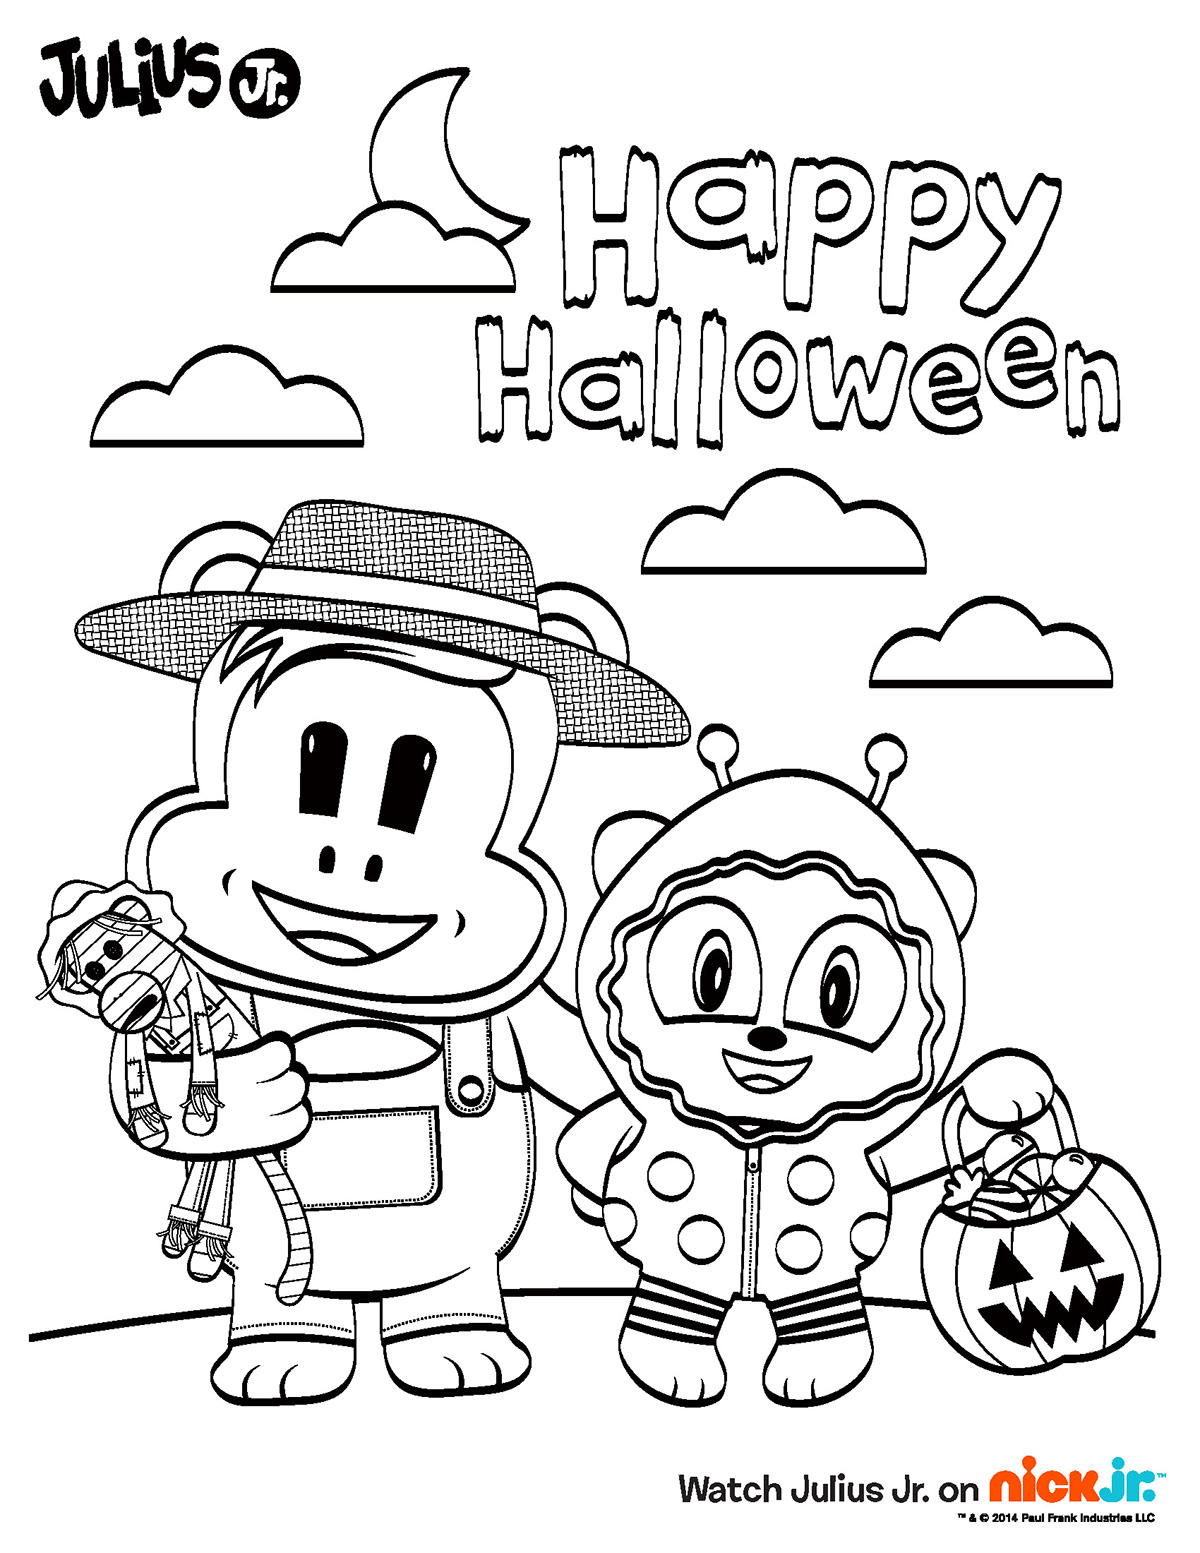 nickelodeon halloween coloring pages - photo#36